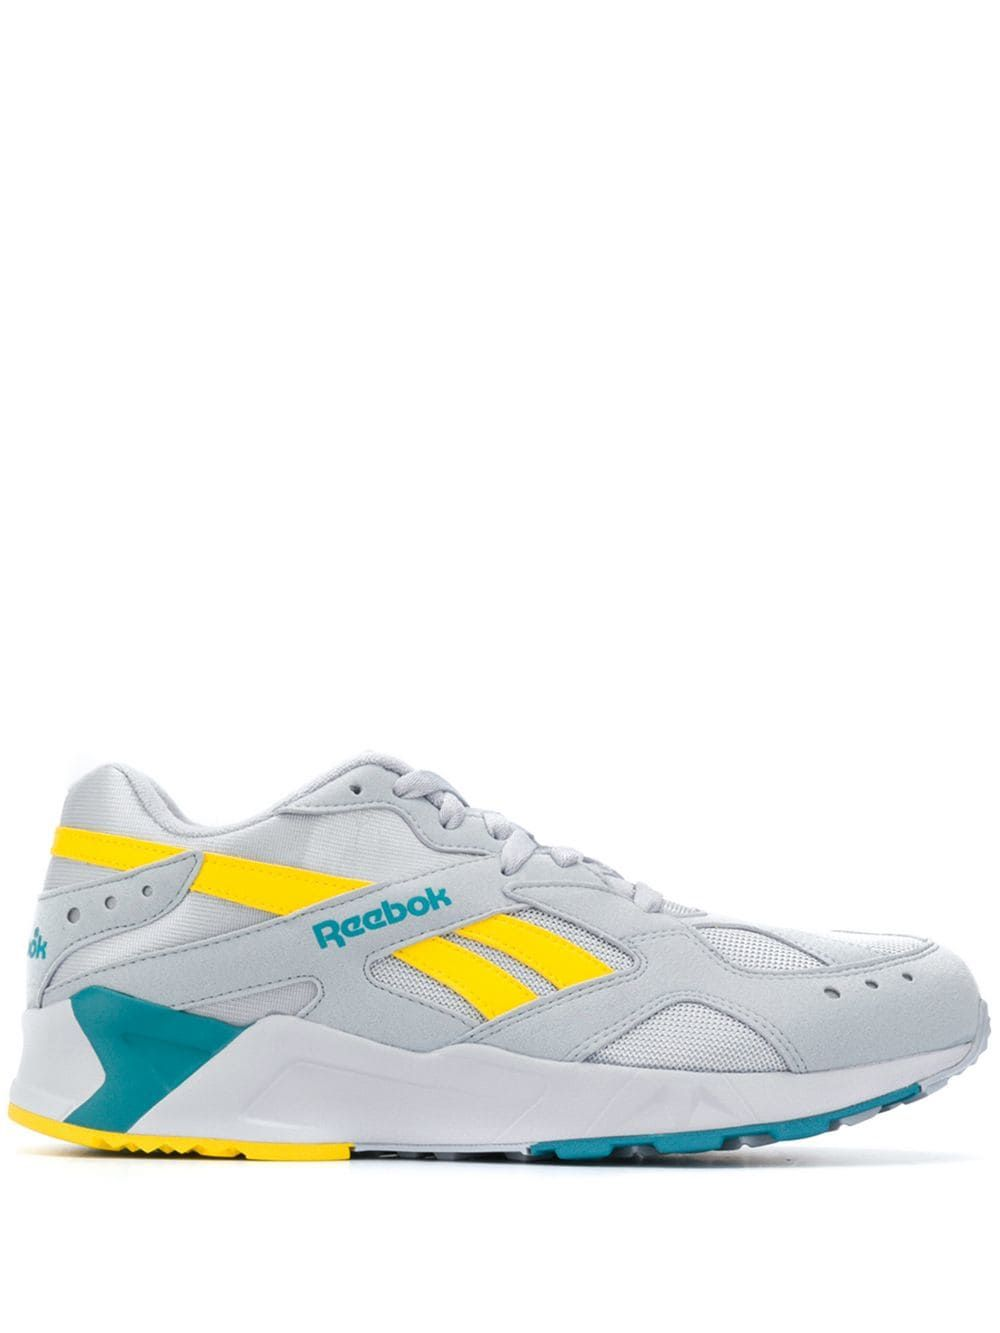 273c9b8ec30 REEBOK REEBOK AZTREK SNEAKERS - GREY. #reebok #shoes | Reebok in ...